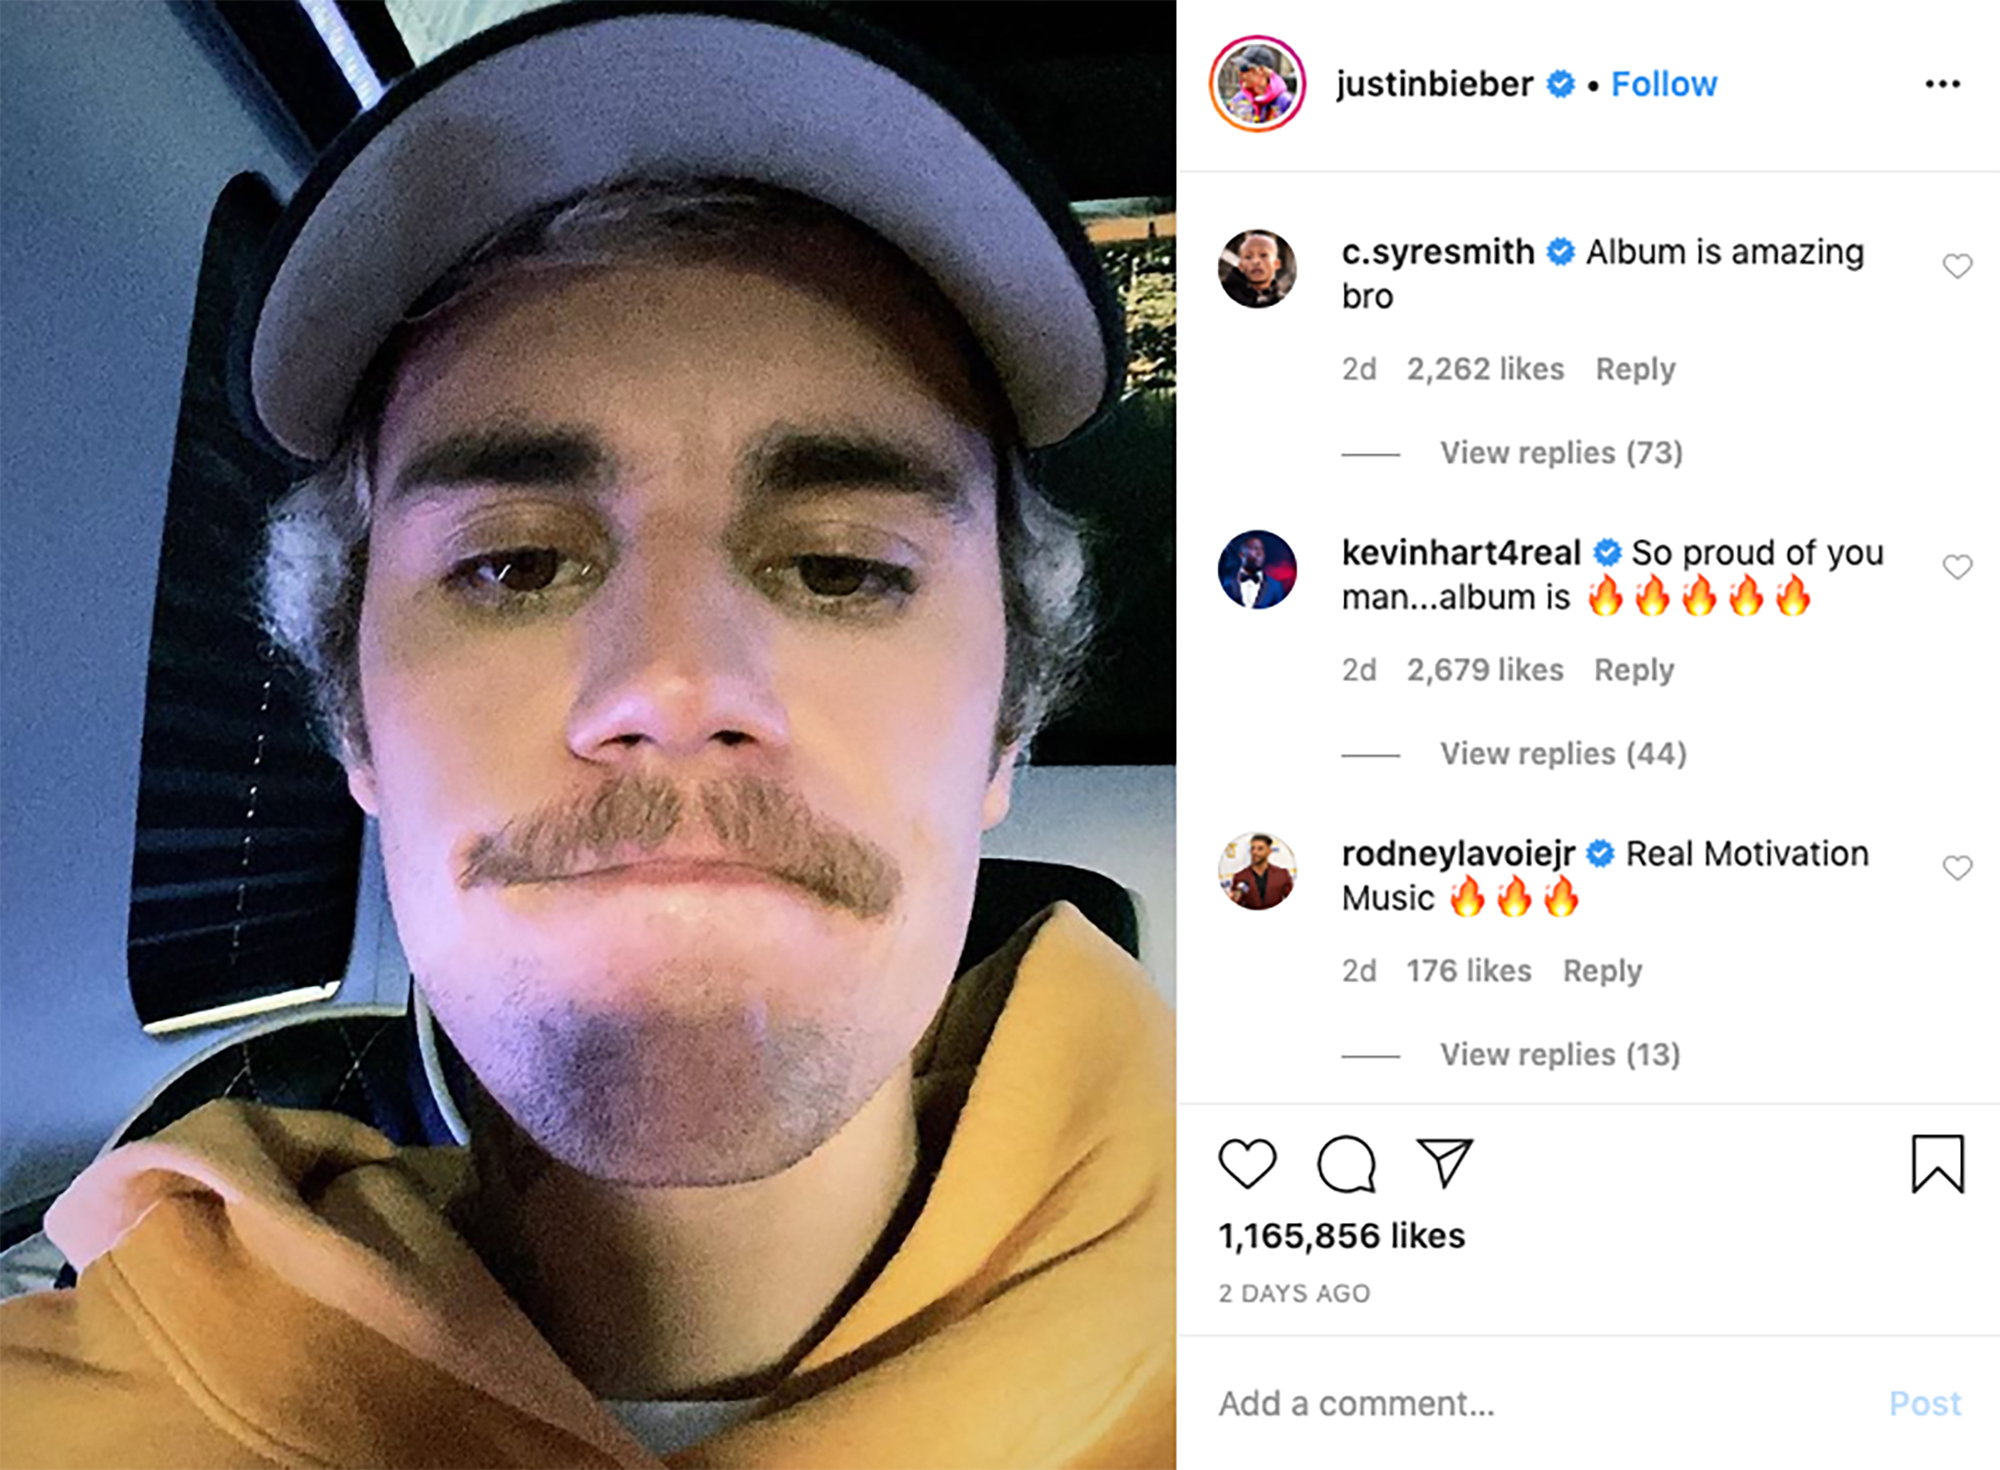 Justin Bieber shaved his mustache to the delight of his wife and Beliebers